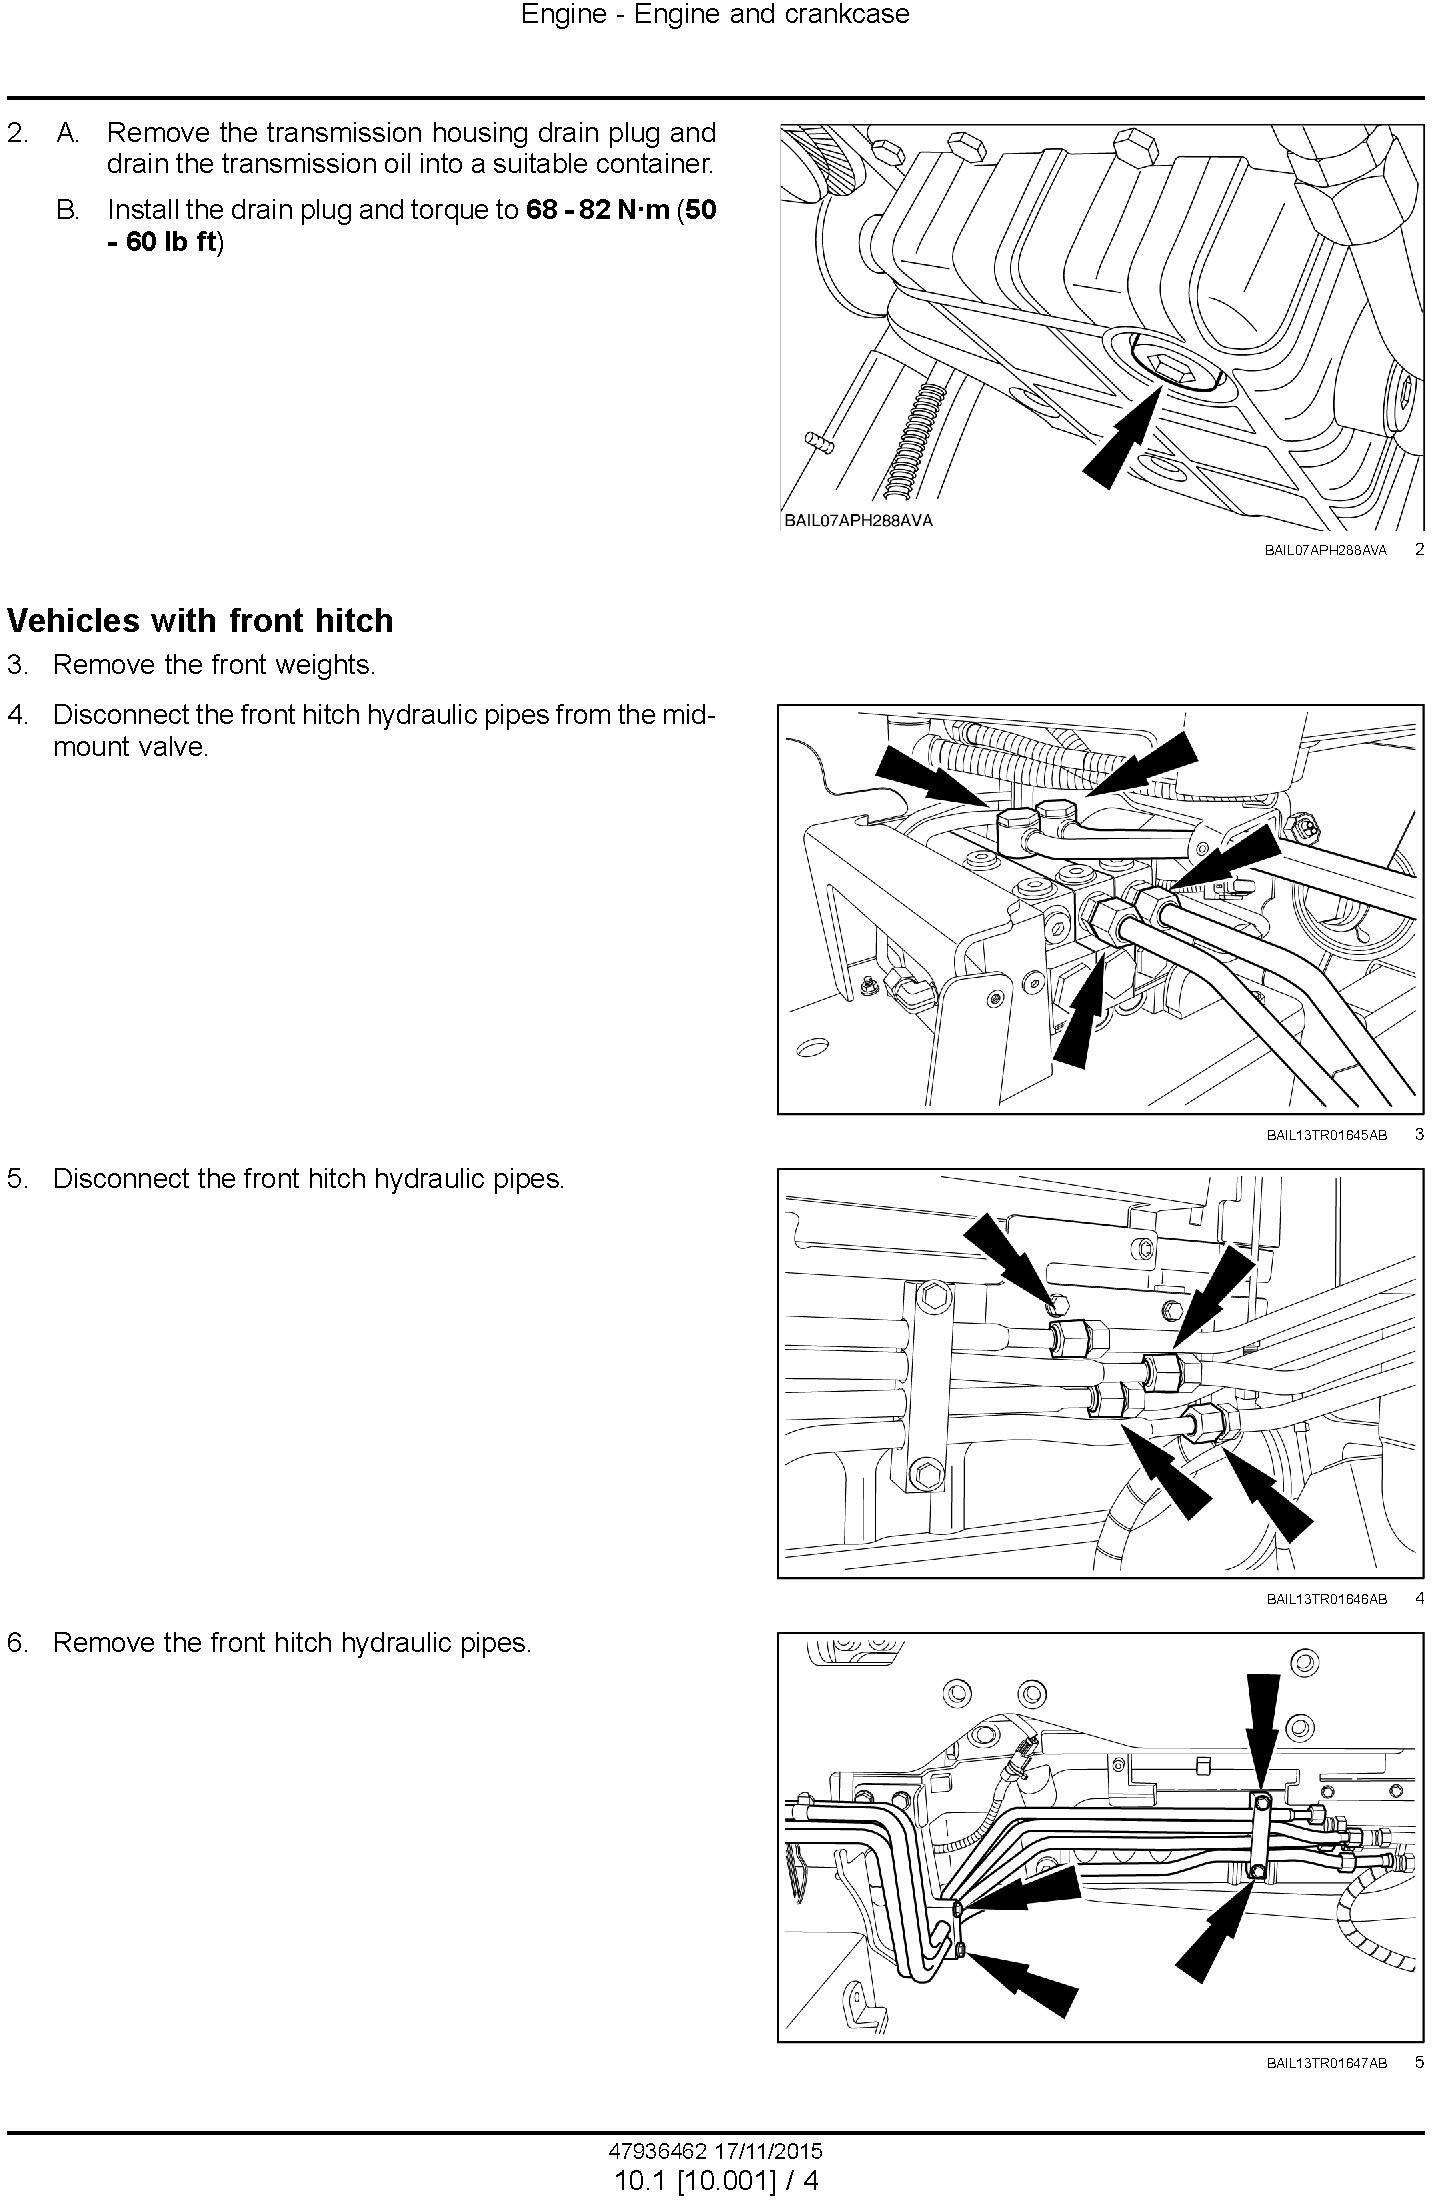 New Holland T7.175, T7.190, T7.210, T7.225 AutoCommand Tier 4B (final) Tractor Service Manual (USA) - 1